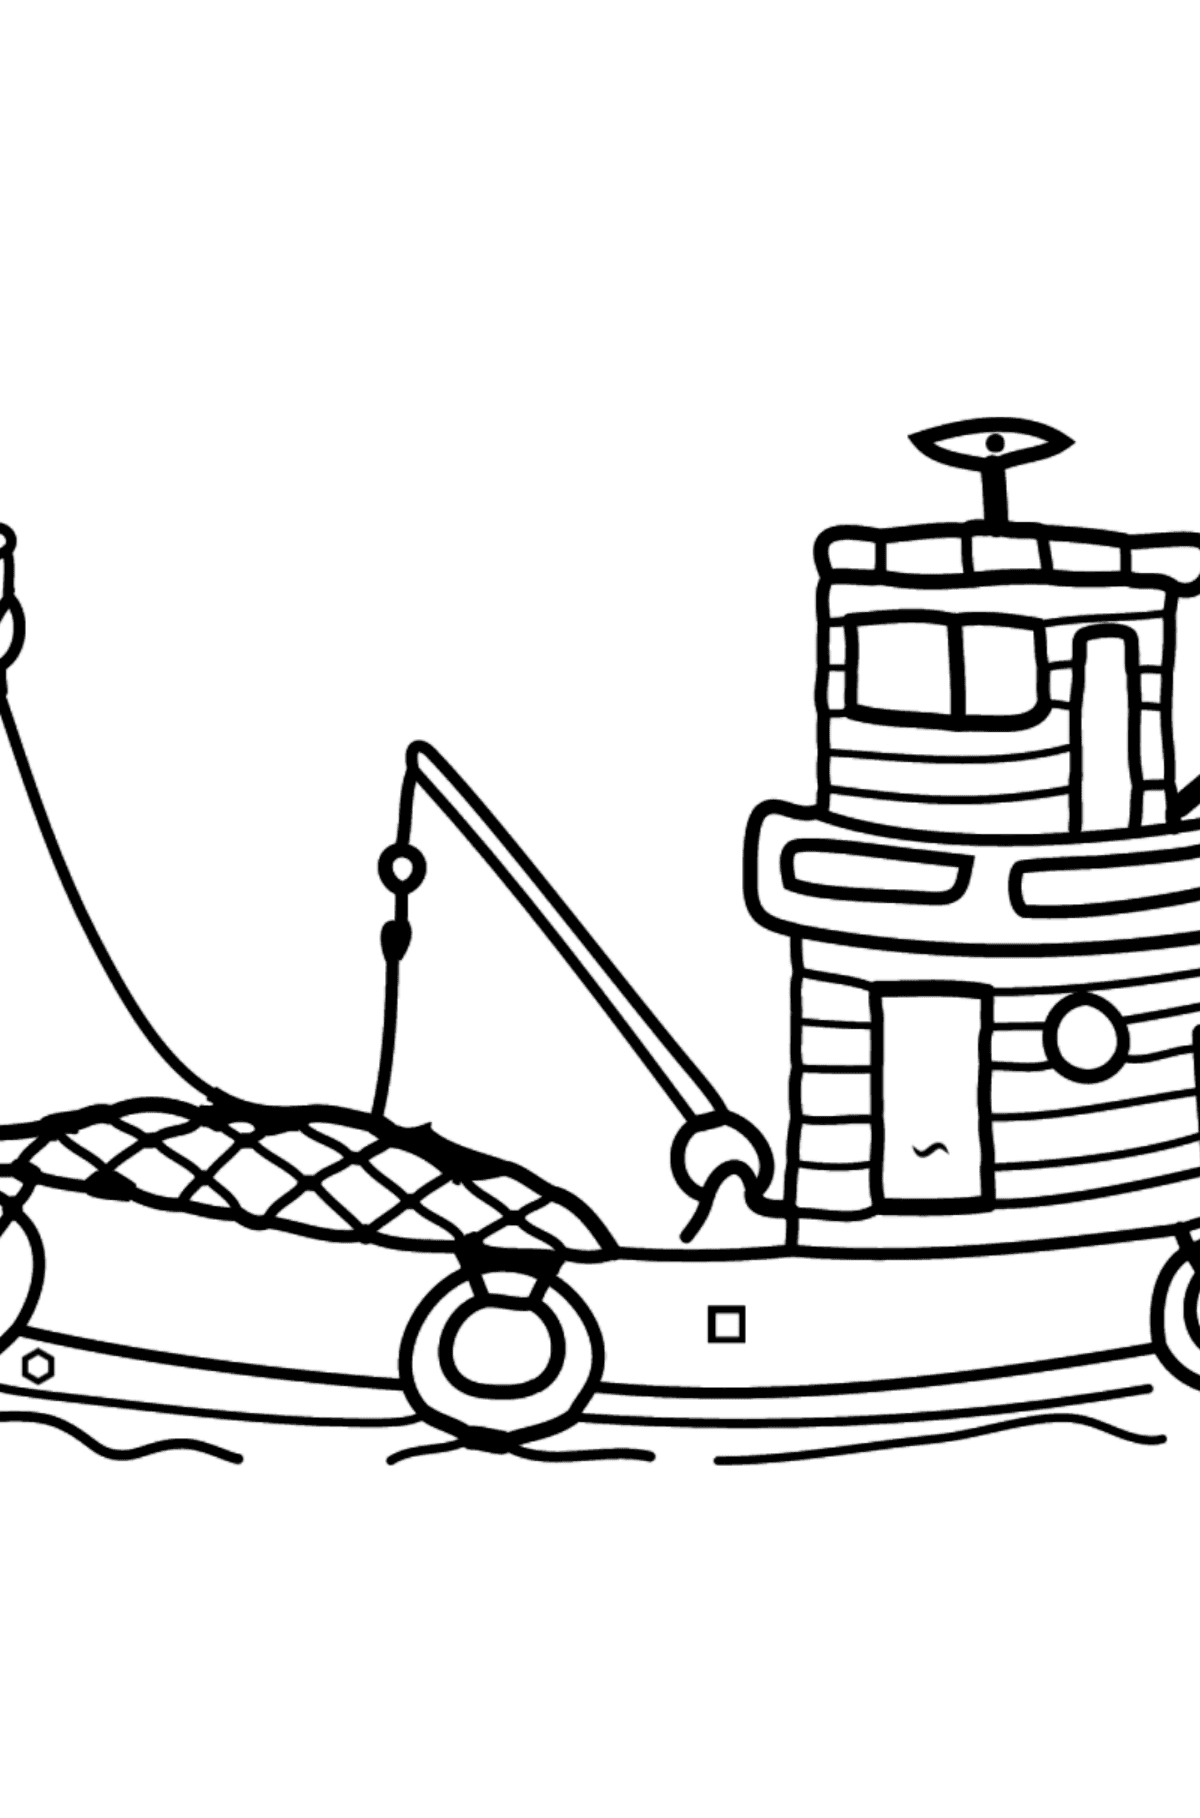 Coloring Page - A Fishing Boat - Coloring by Symbols and Geometric Shapes for Kids